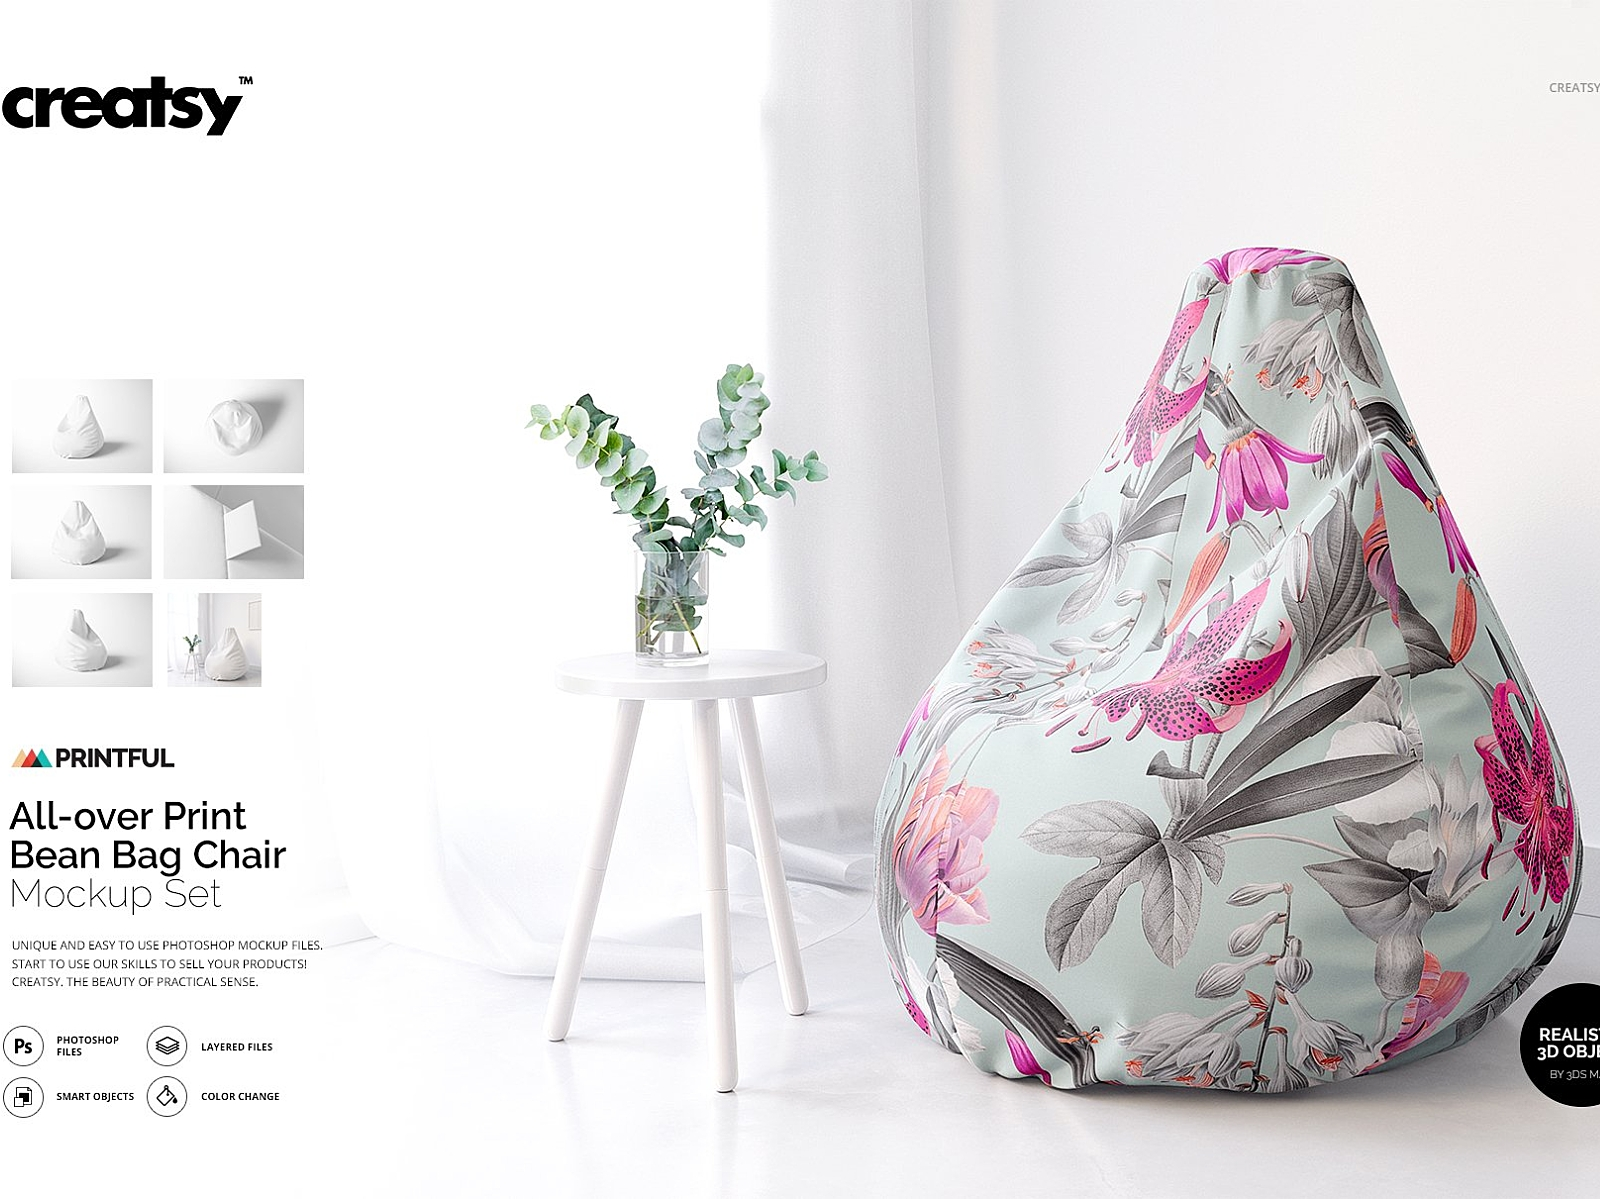 Outstanding All Over Print Bean Bag Chair Mockup By Mockup5 On Dribbble Unemploymentrelief Wooden Chair Designs For Living Room Unemploymentrelieforg